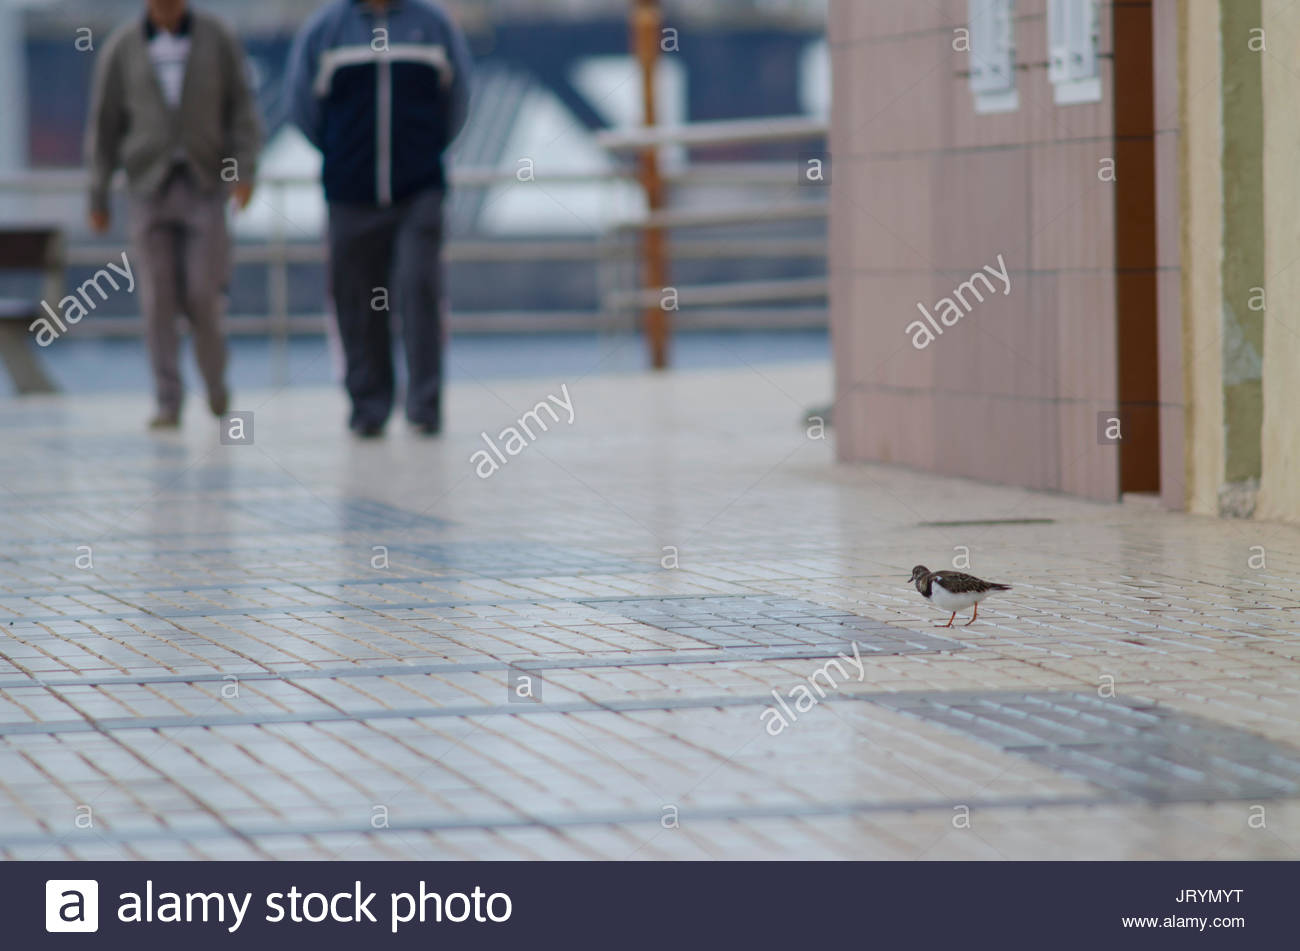 Ruddy turnstone (Arenaria interpres) in a avenue. Playa de Arinaga. Agüimes. Gran Canaria. Canary Islands. Spain. - Stock Image